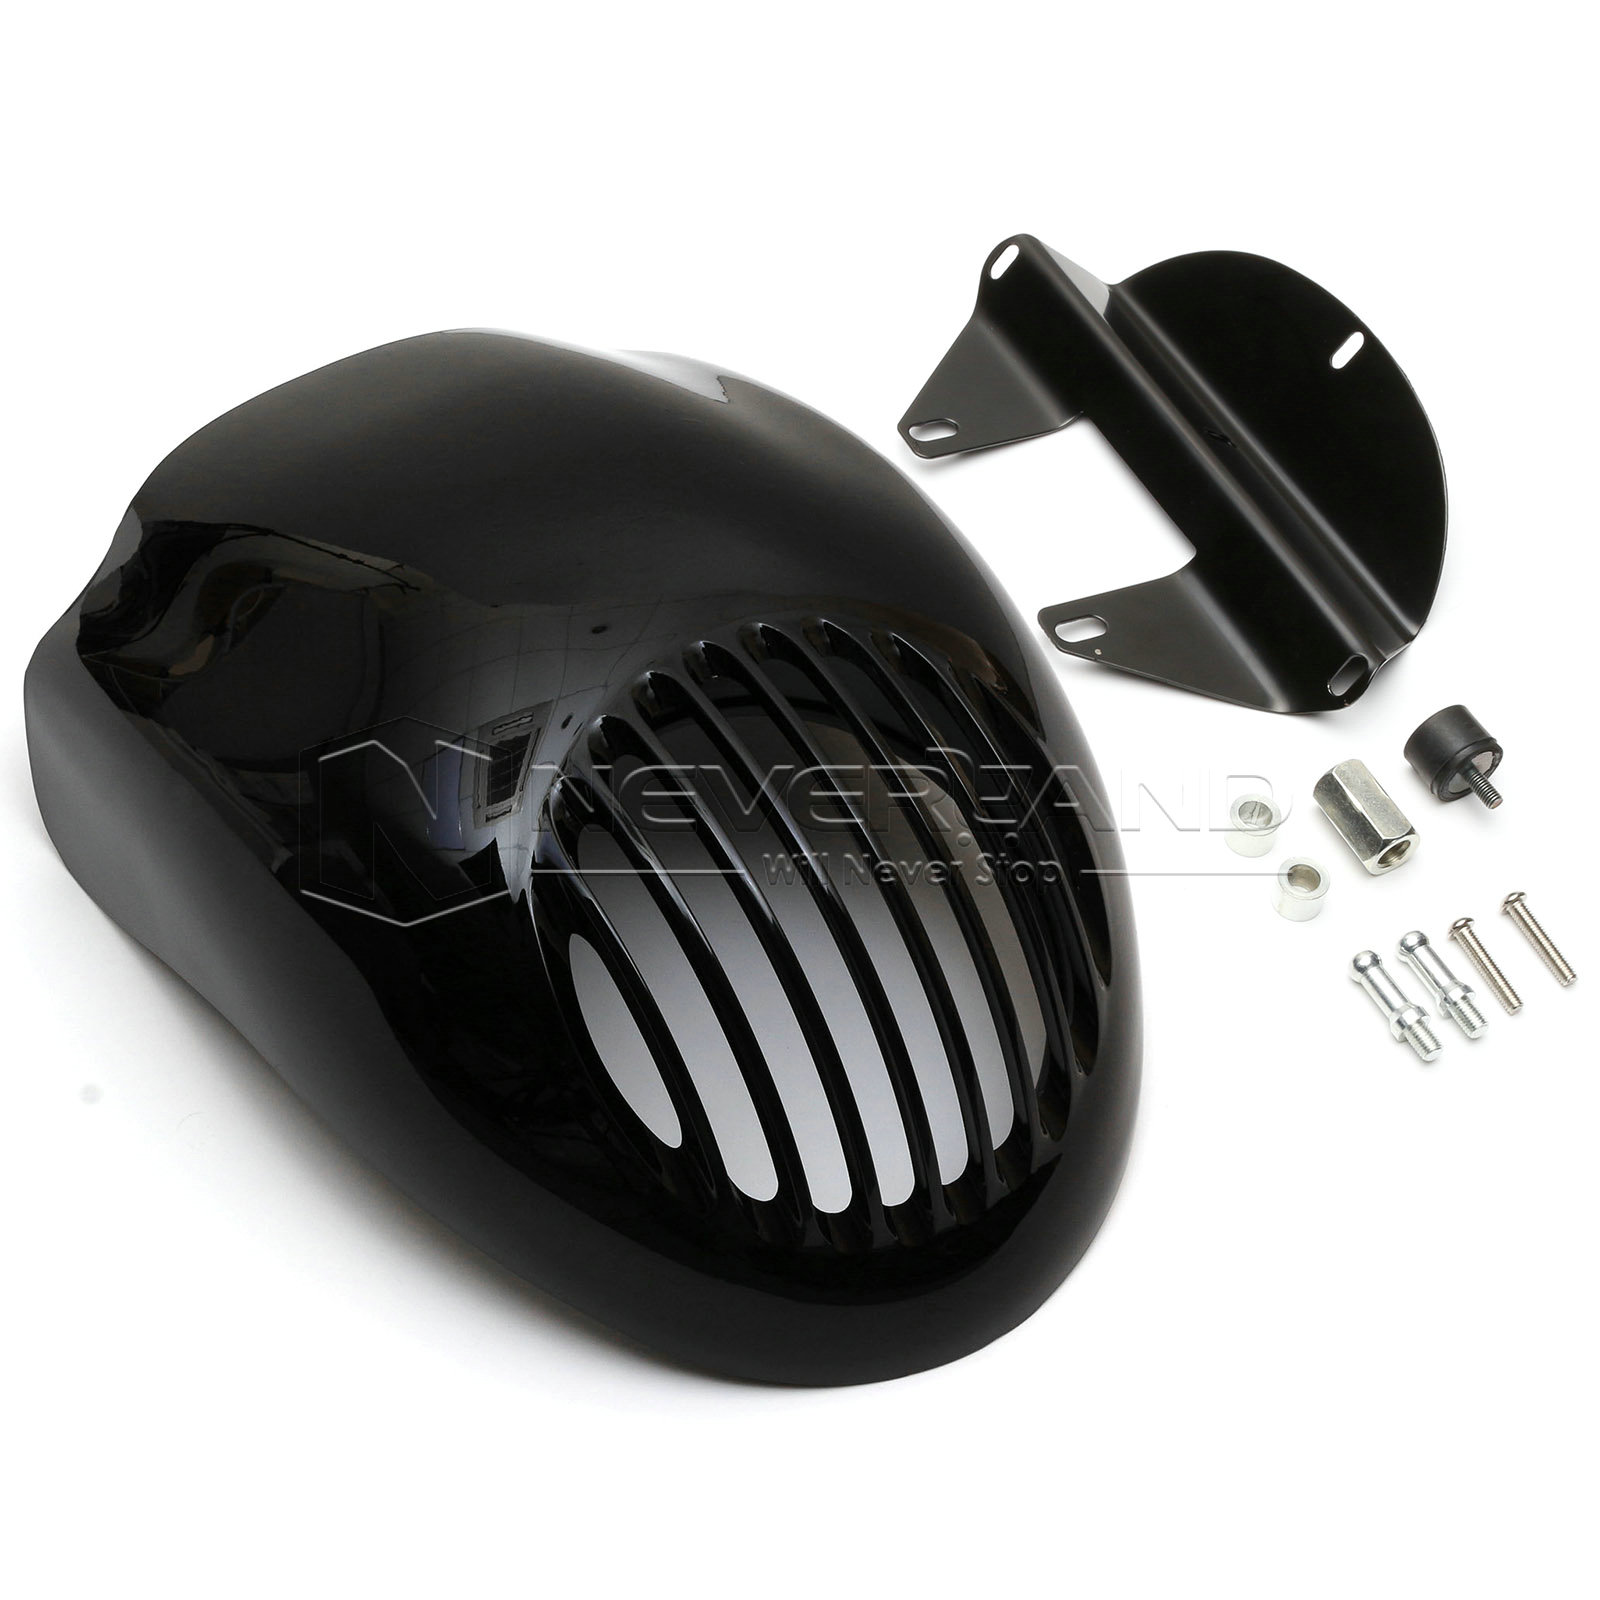 ФОТО Gloss Black Front Cowl Fork Mount Headlight Fairing Visor Grill Mask For Harley Sportster Dyna XL FX 883 Freeshipping D30